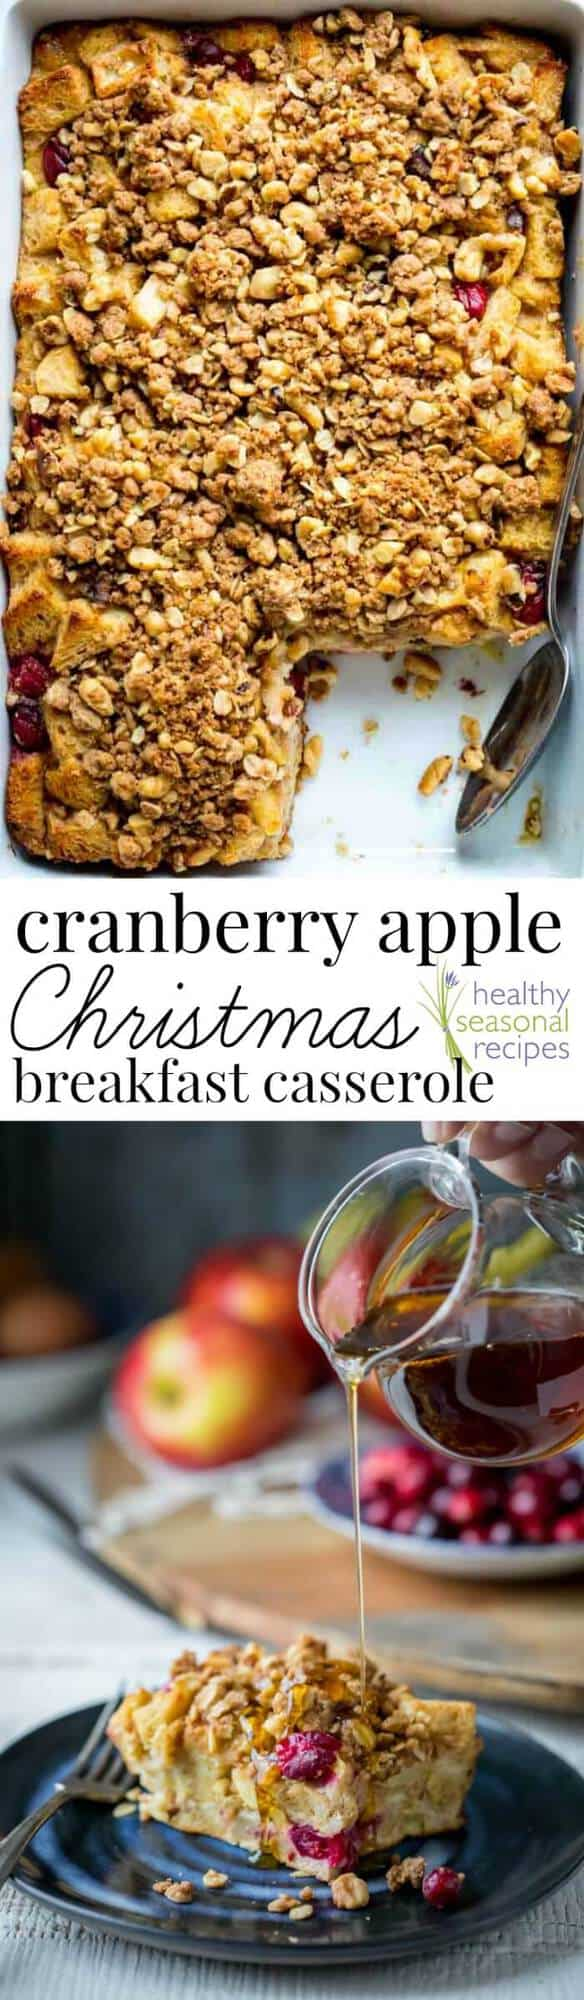 cranberry apple christmas breakfast casserole